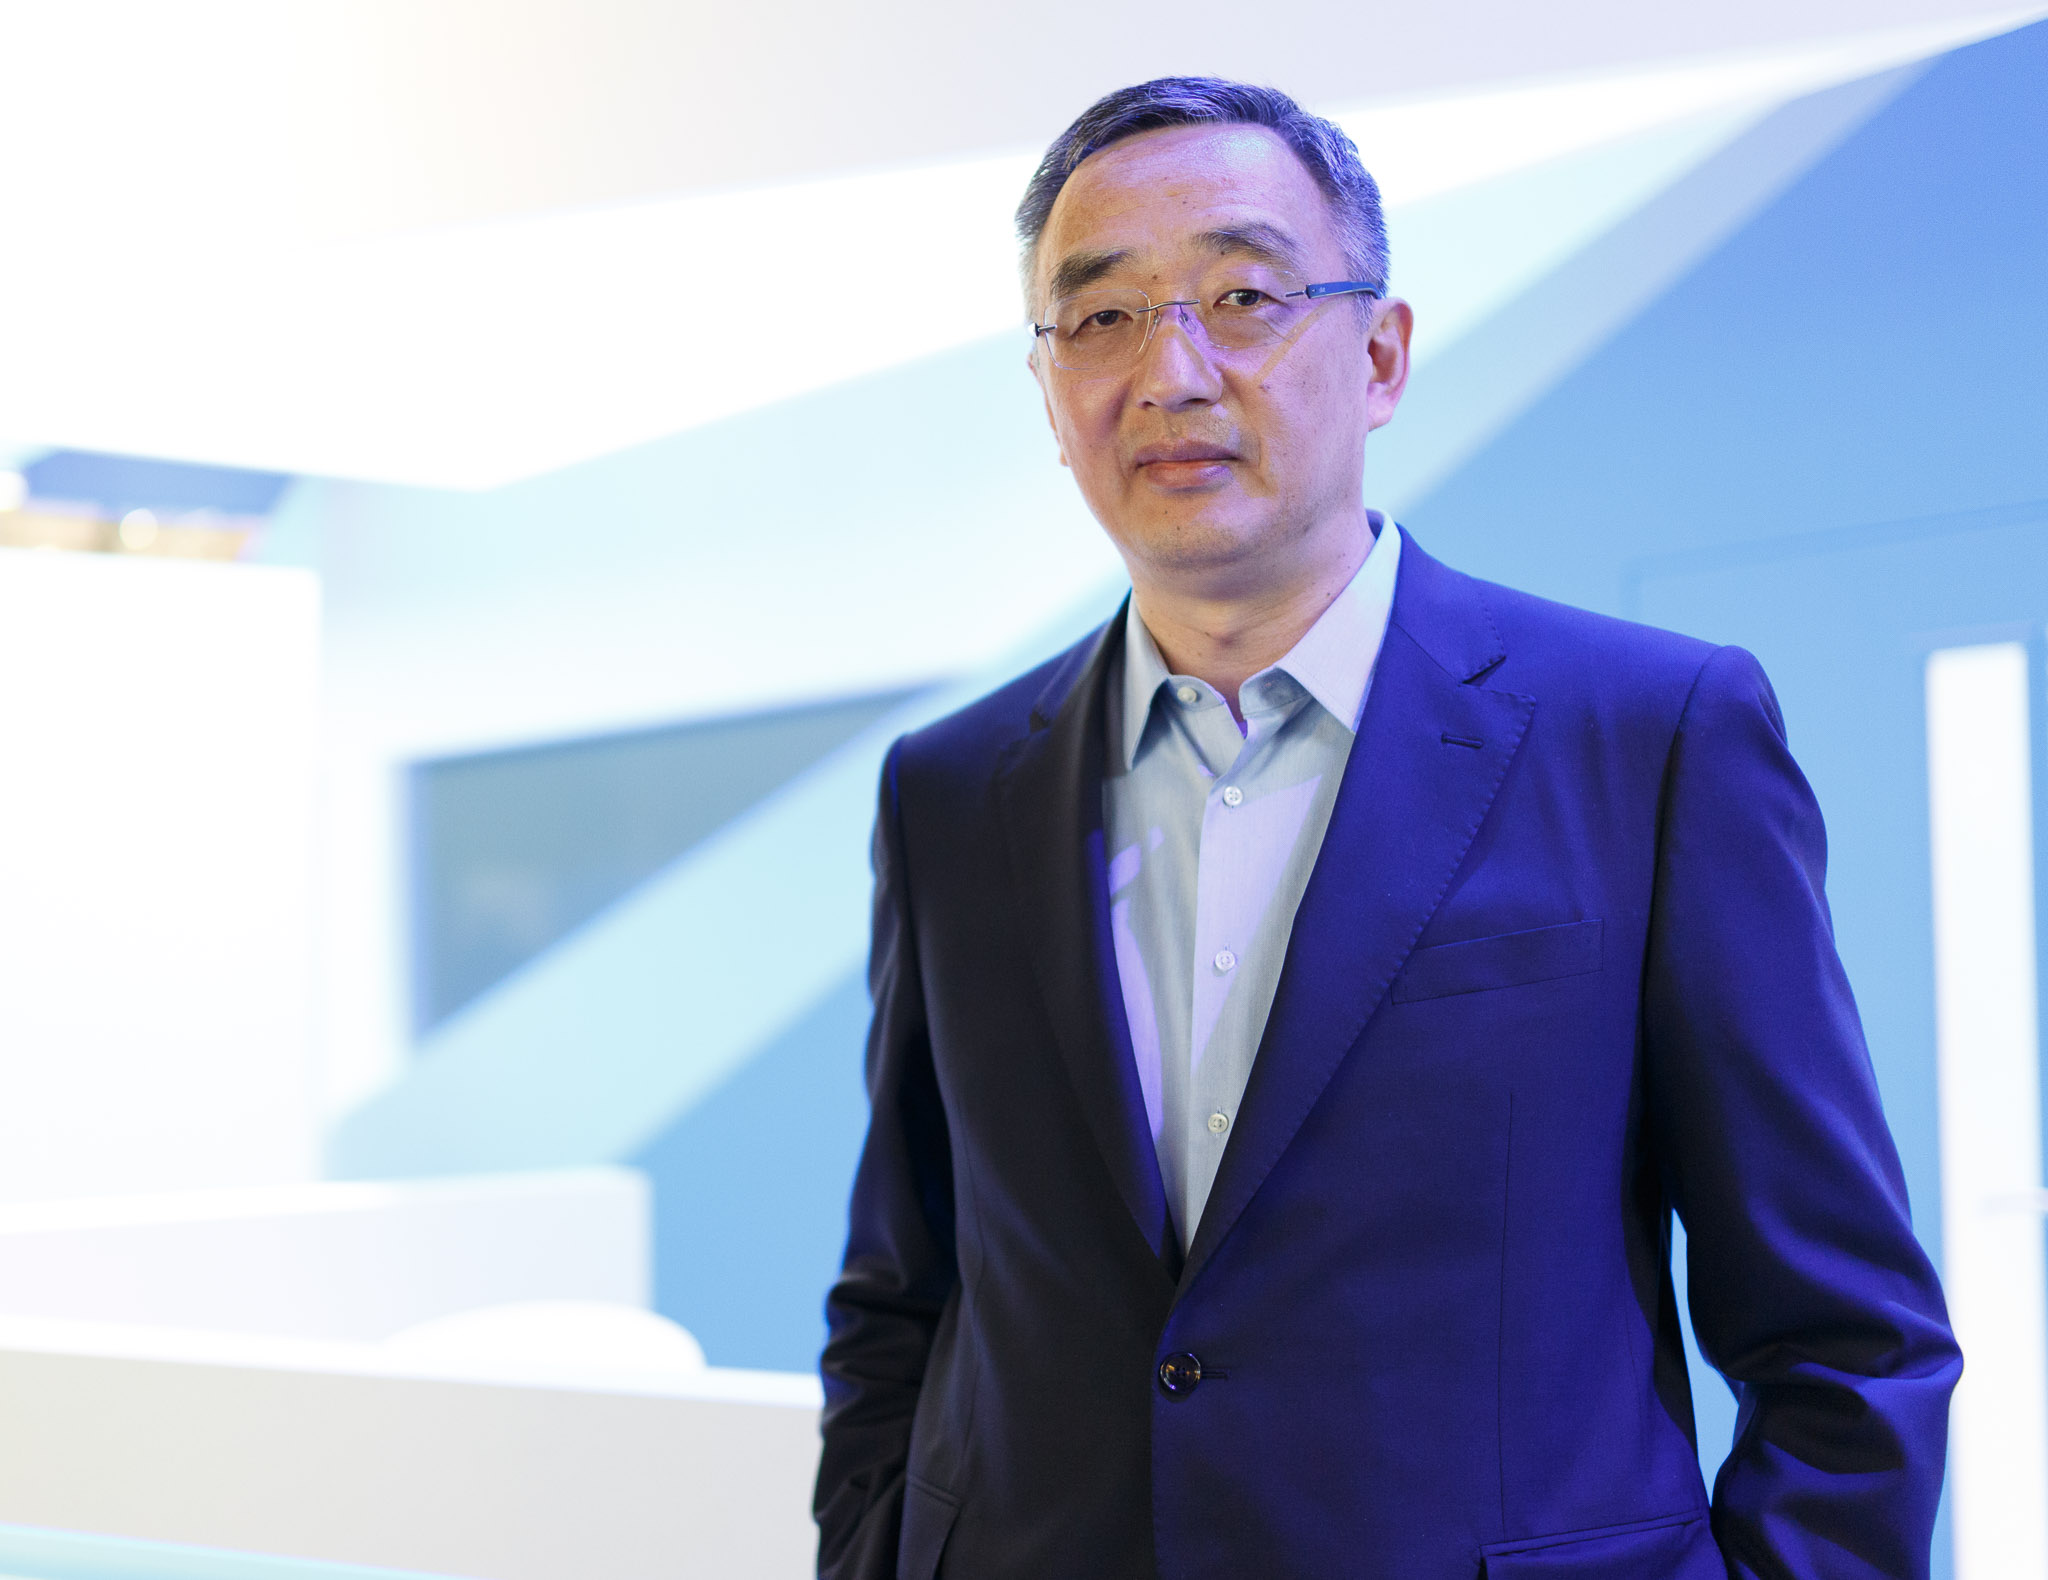 Acadine CEO Li Gong at Mobile World Congress in Barcelona in 2016.